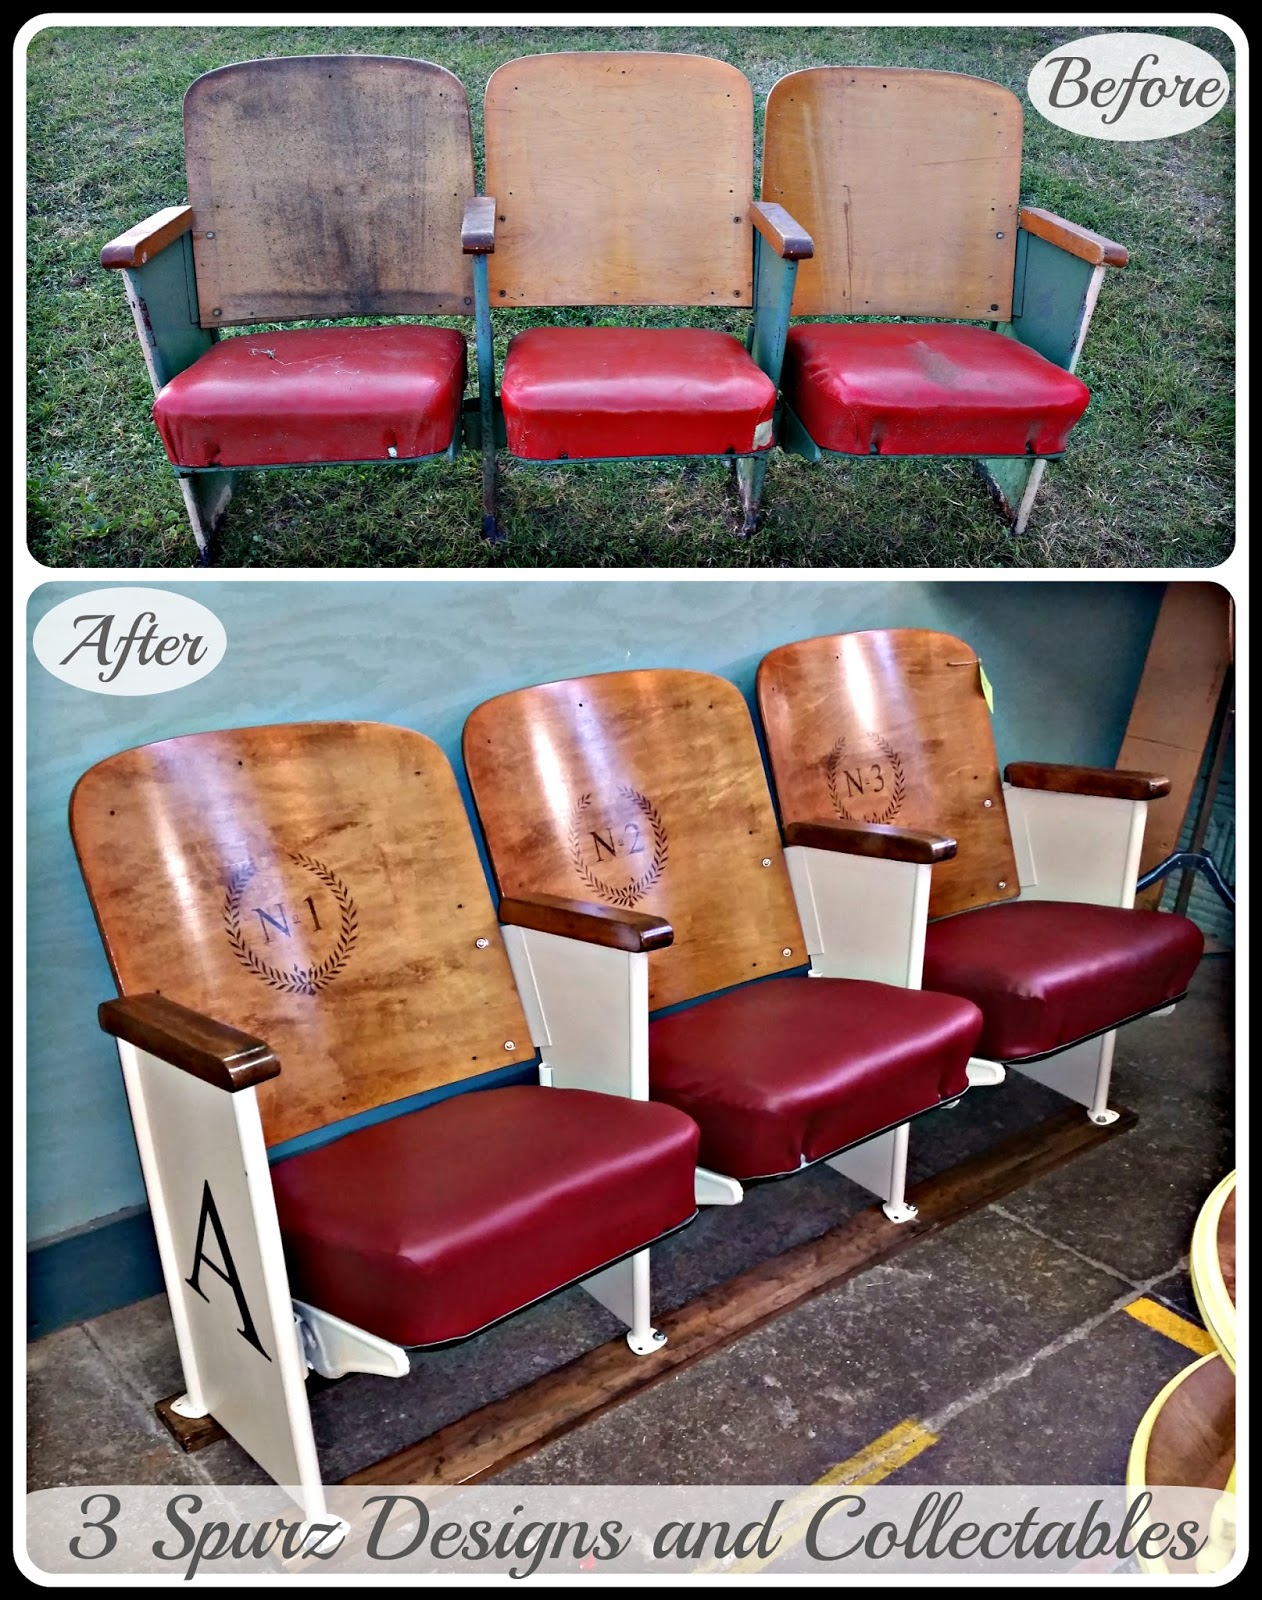 Movie Theater Chairs 3 Spurz Dandc Repurposed Refurbished Creations Old